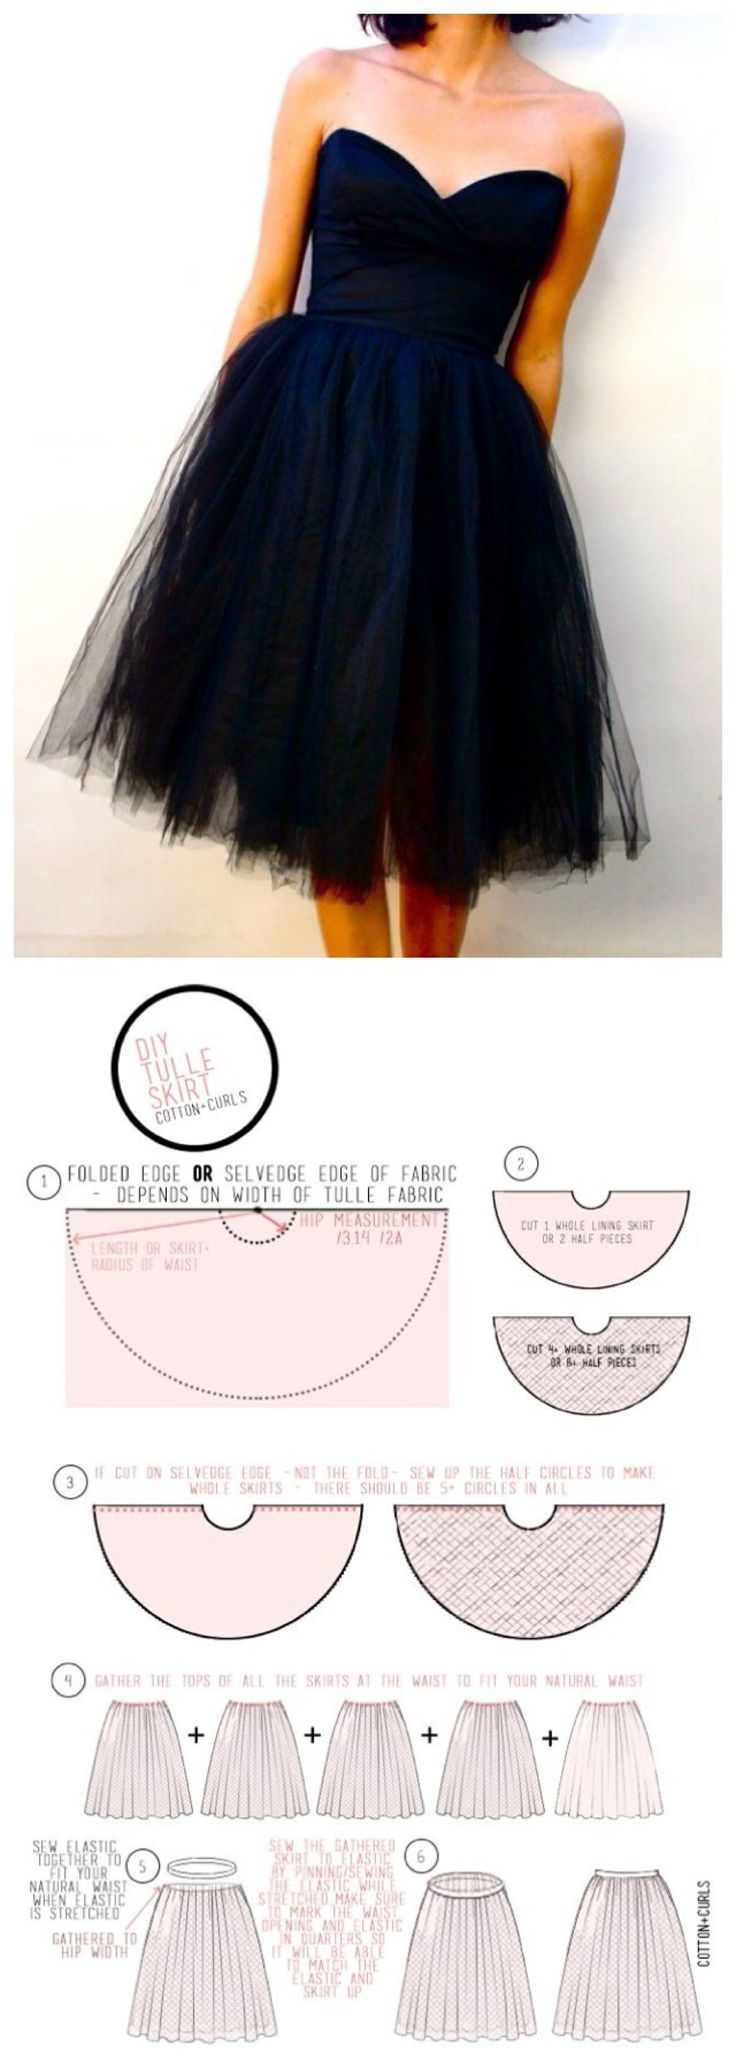 DIY tulle skirt – Gorgeous skirt sewing pattern for special occasions or just thos